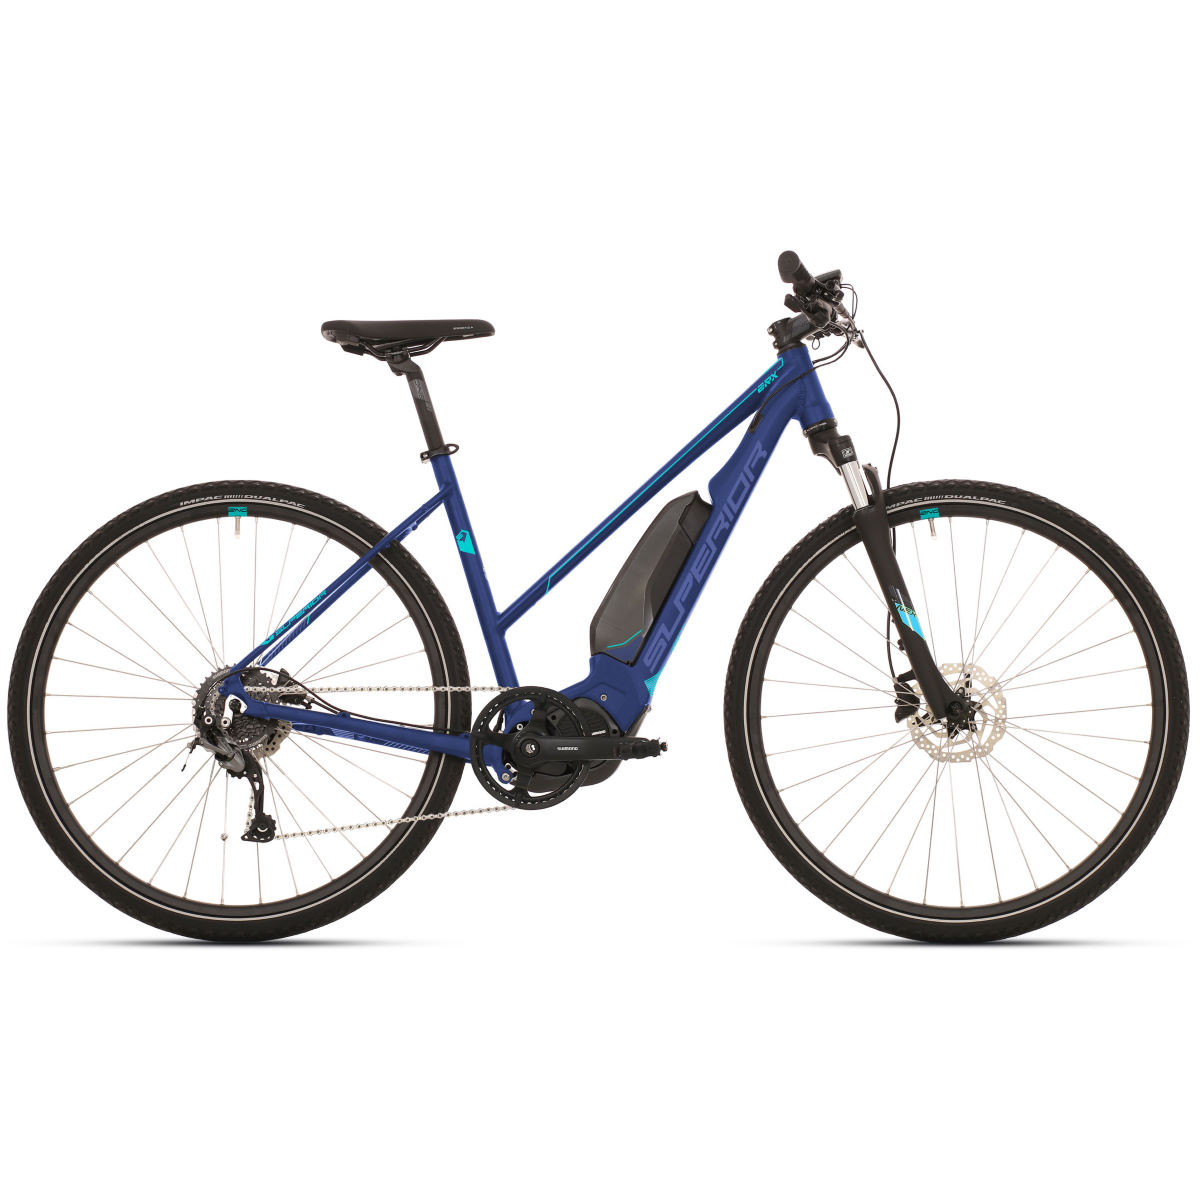 Superior Superior eRX 650 Lady Urban E-Bike (2020)   Electric Urban Bikes